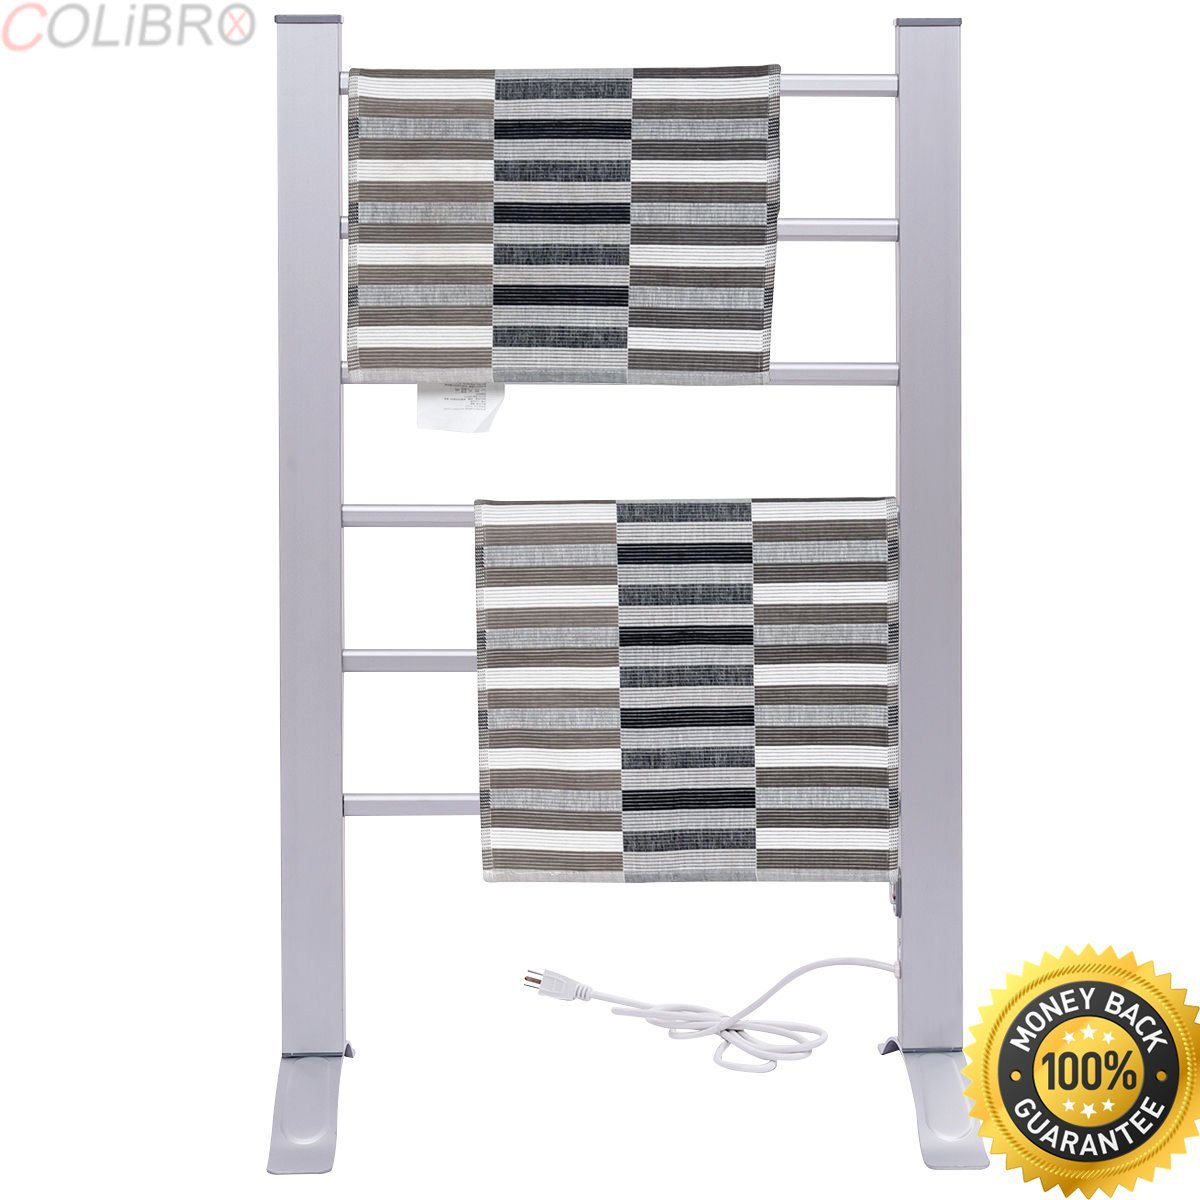 Freestanding Electric Towel Rail Find